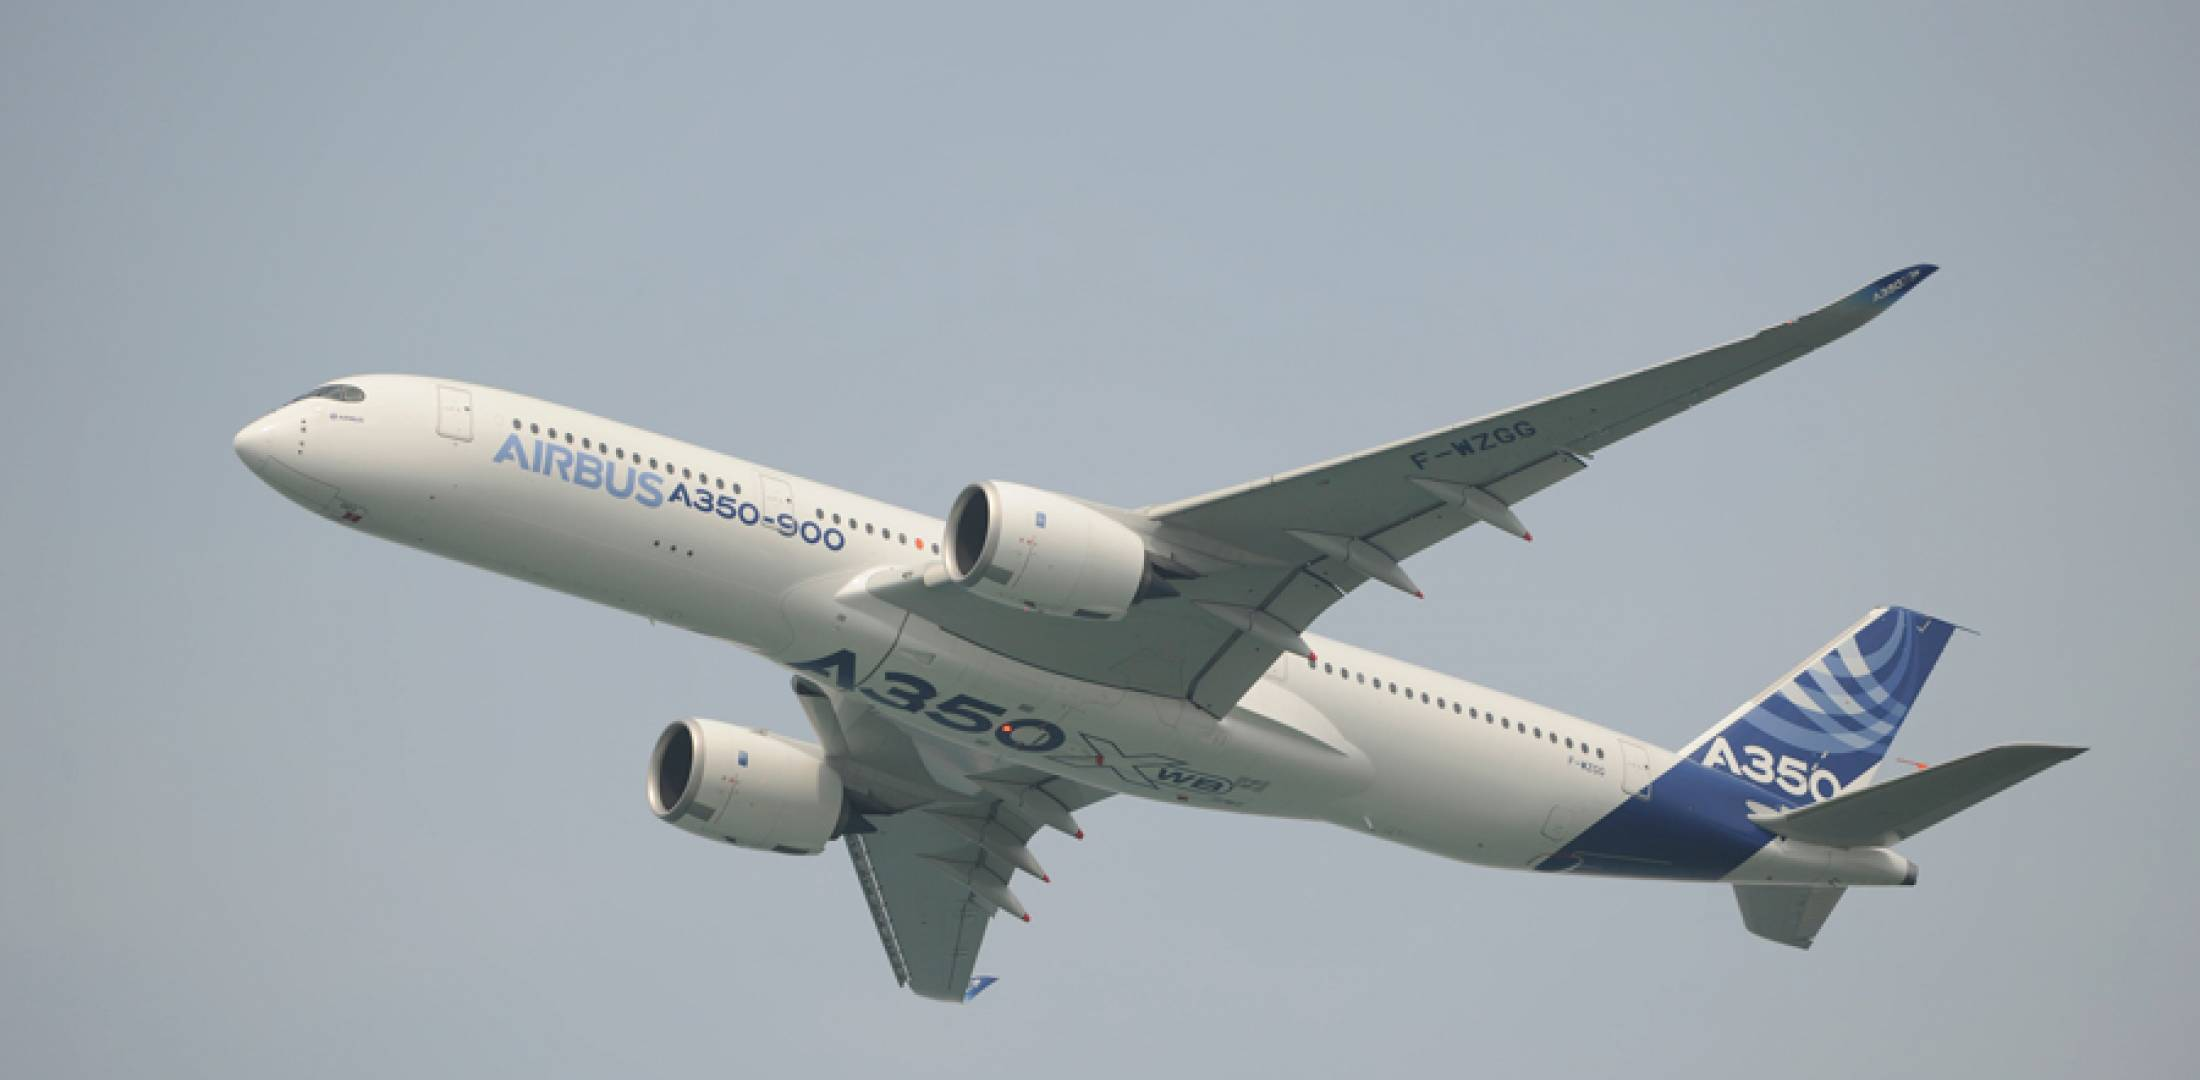 The all-new Airbus A350XWB flew in the Singapore Airshow flight display. (Photo: Mark Wagner)